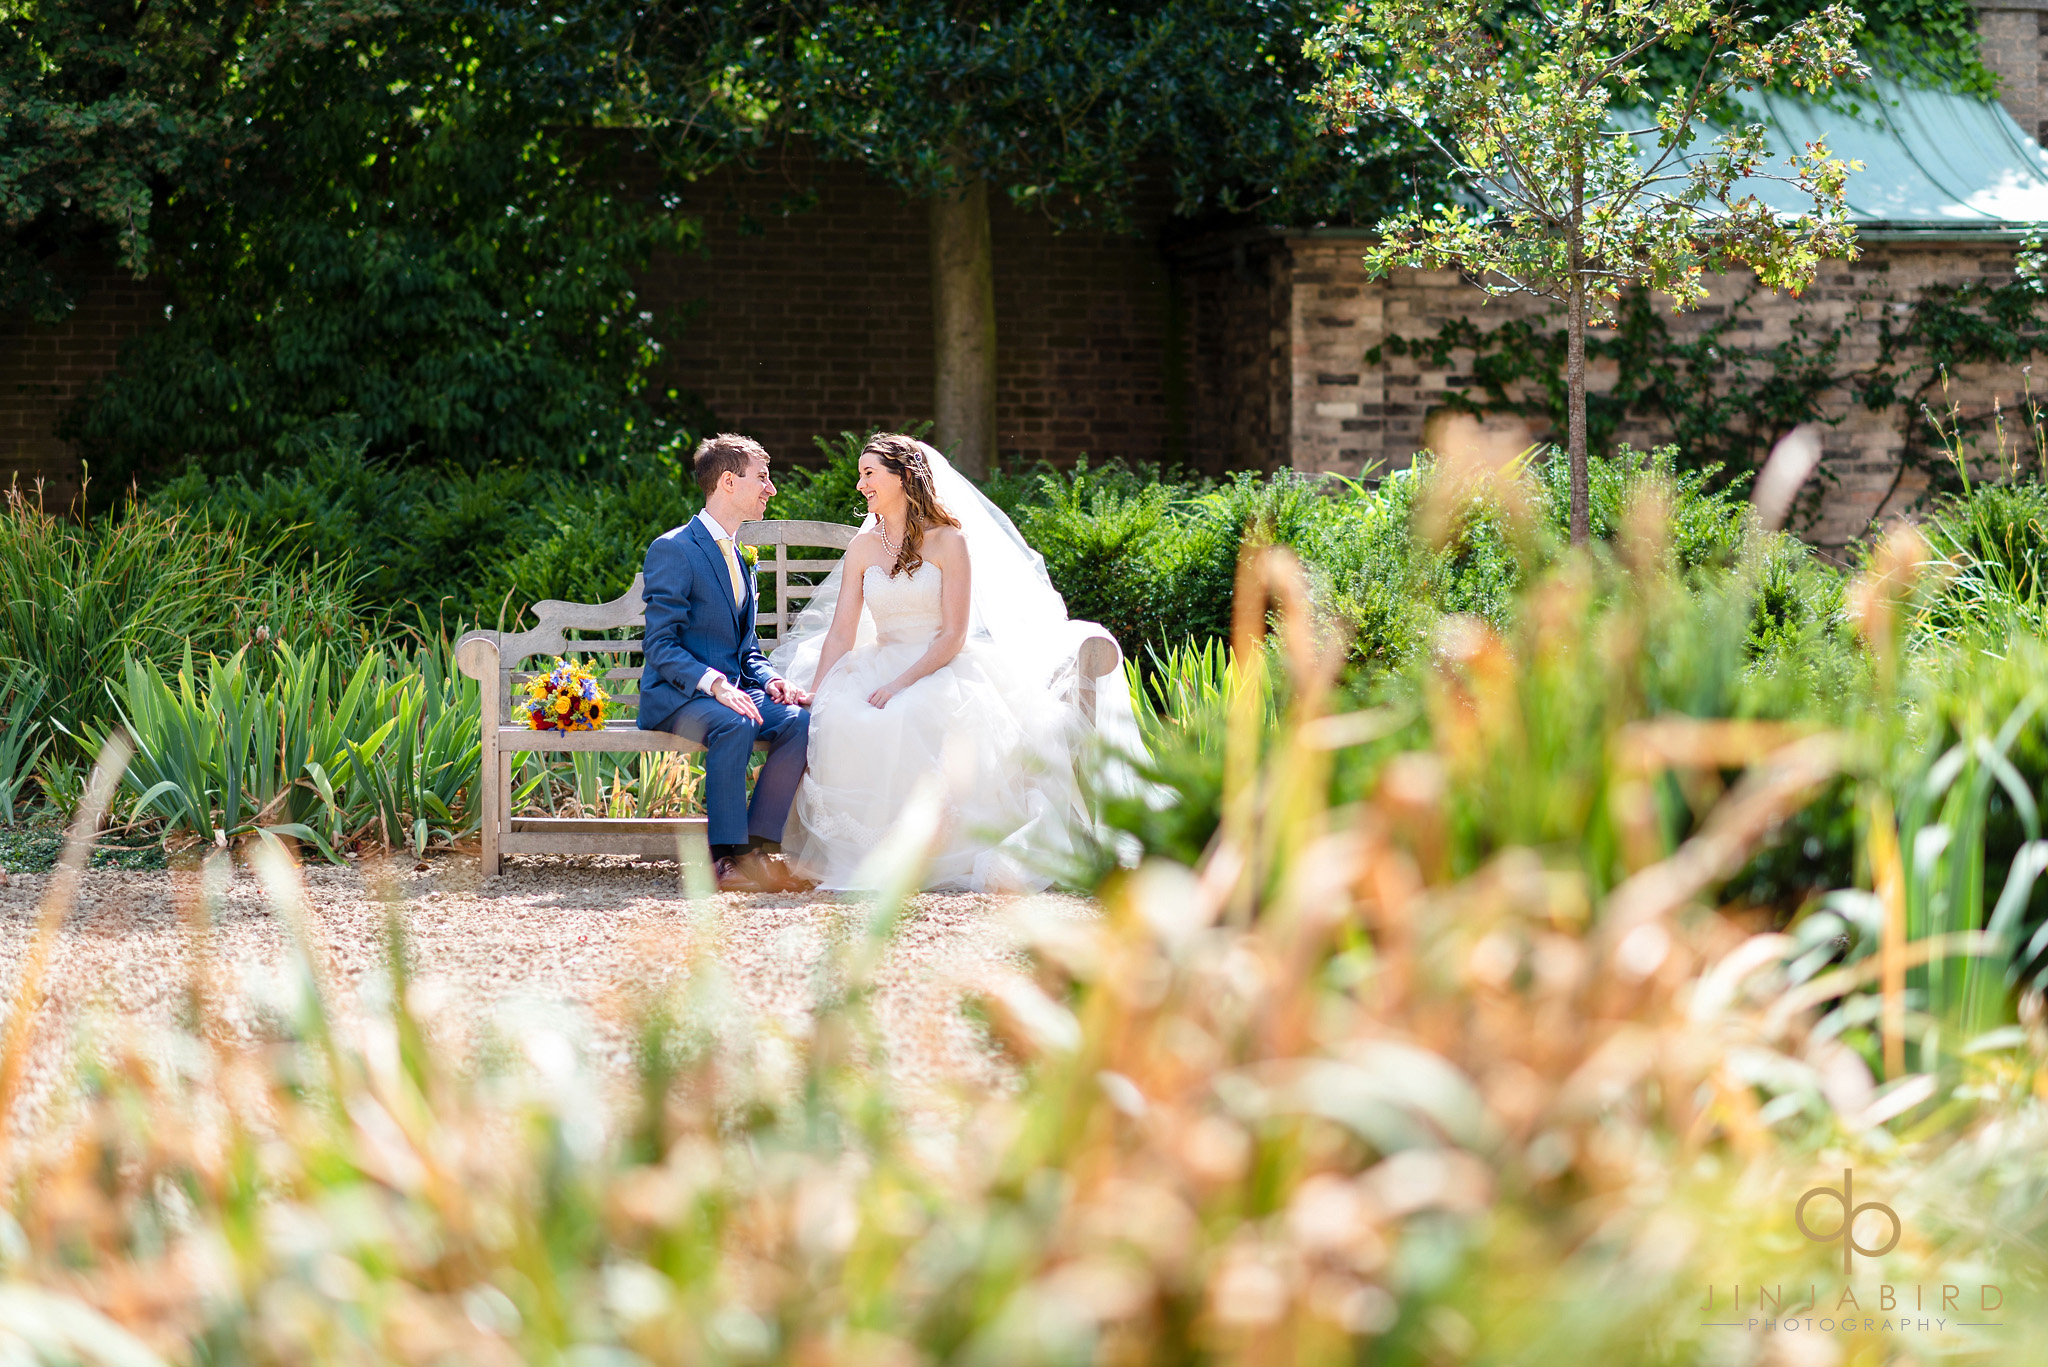 christs college wedding photographer